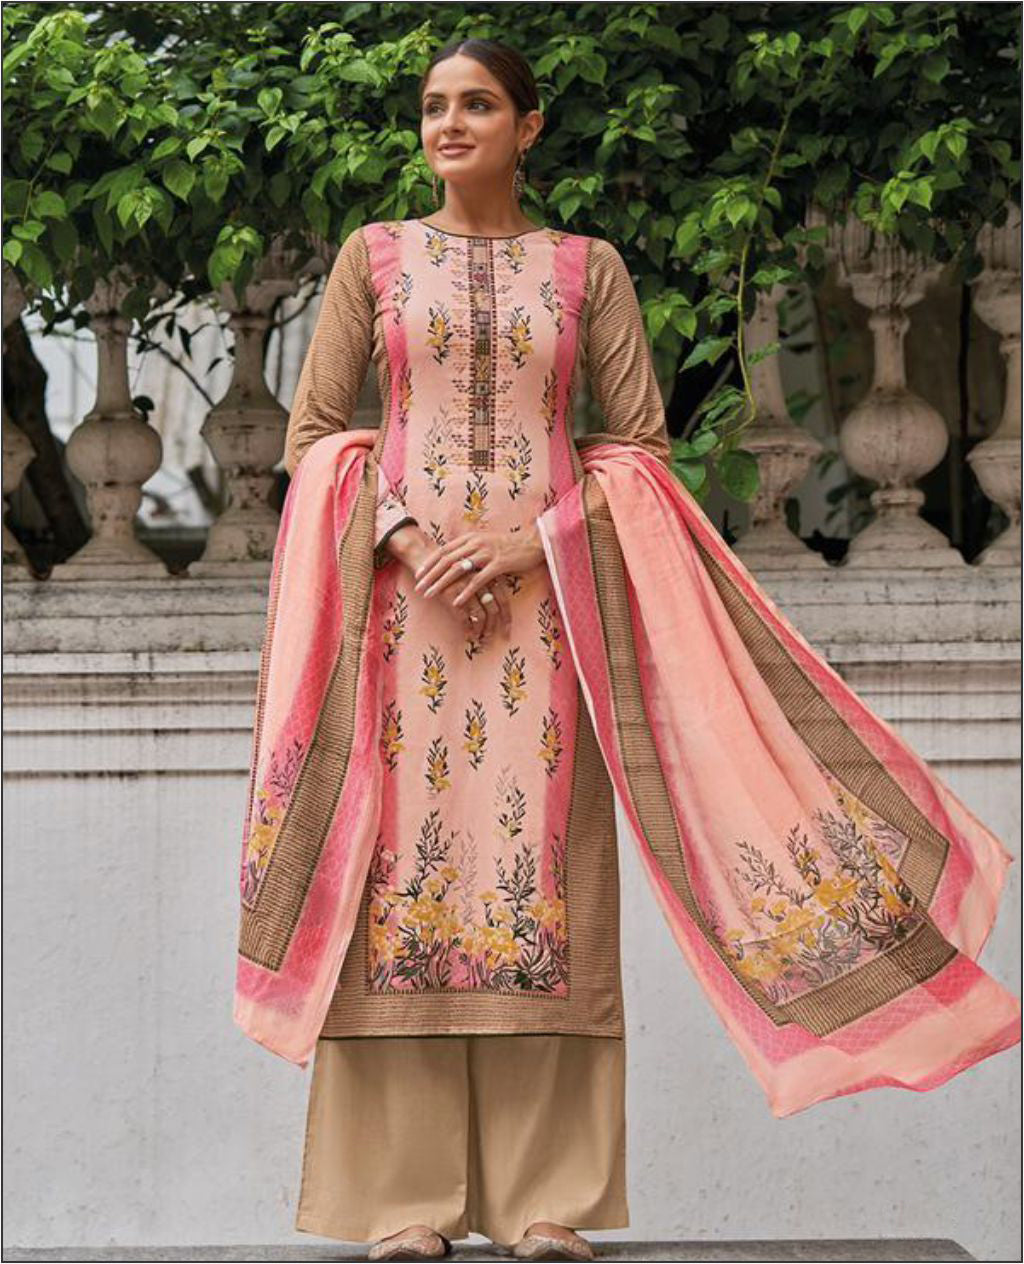 Pink Cotton Jam Unstitched Suit Fabric Set With Embroidery